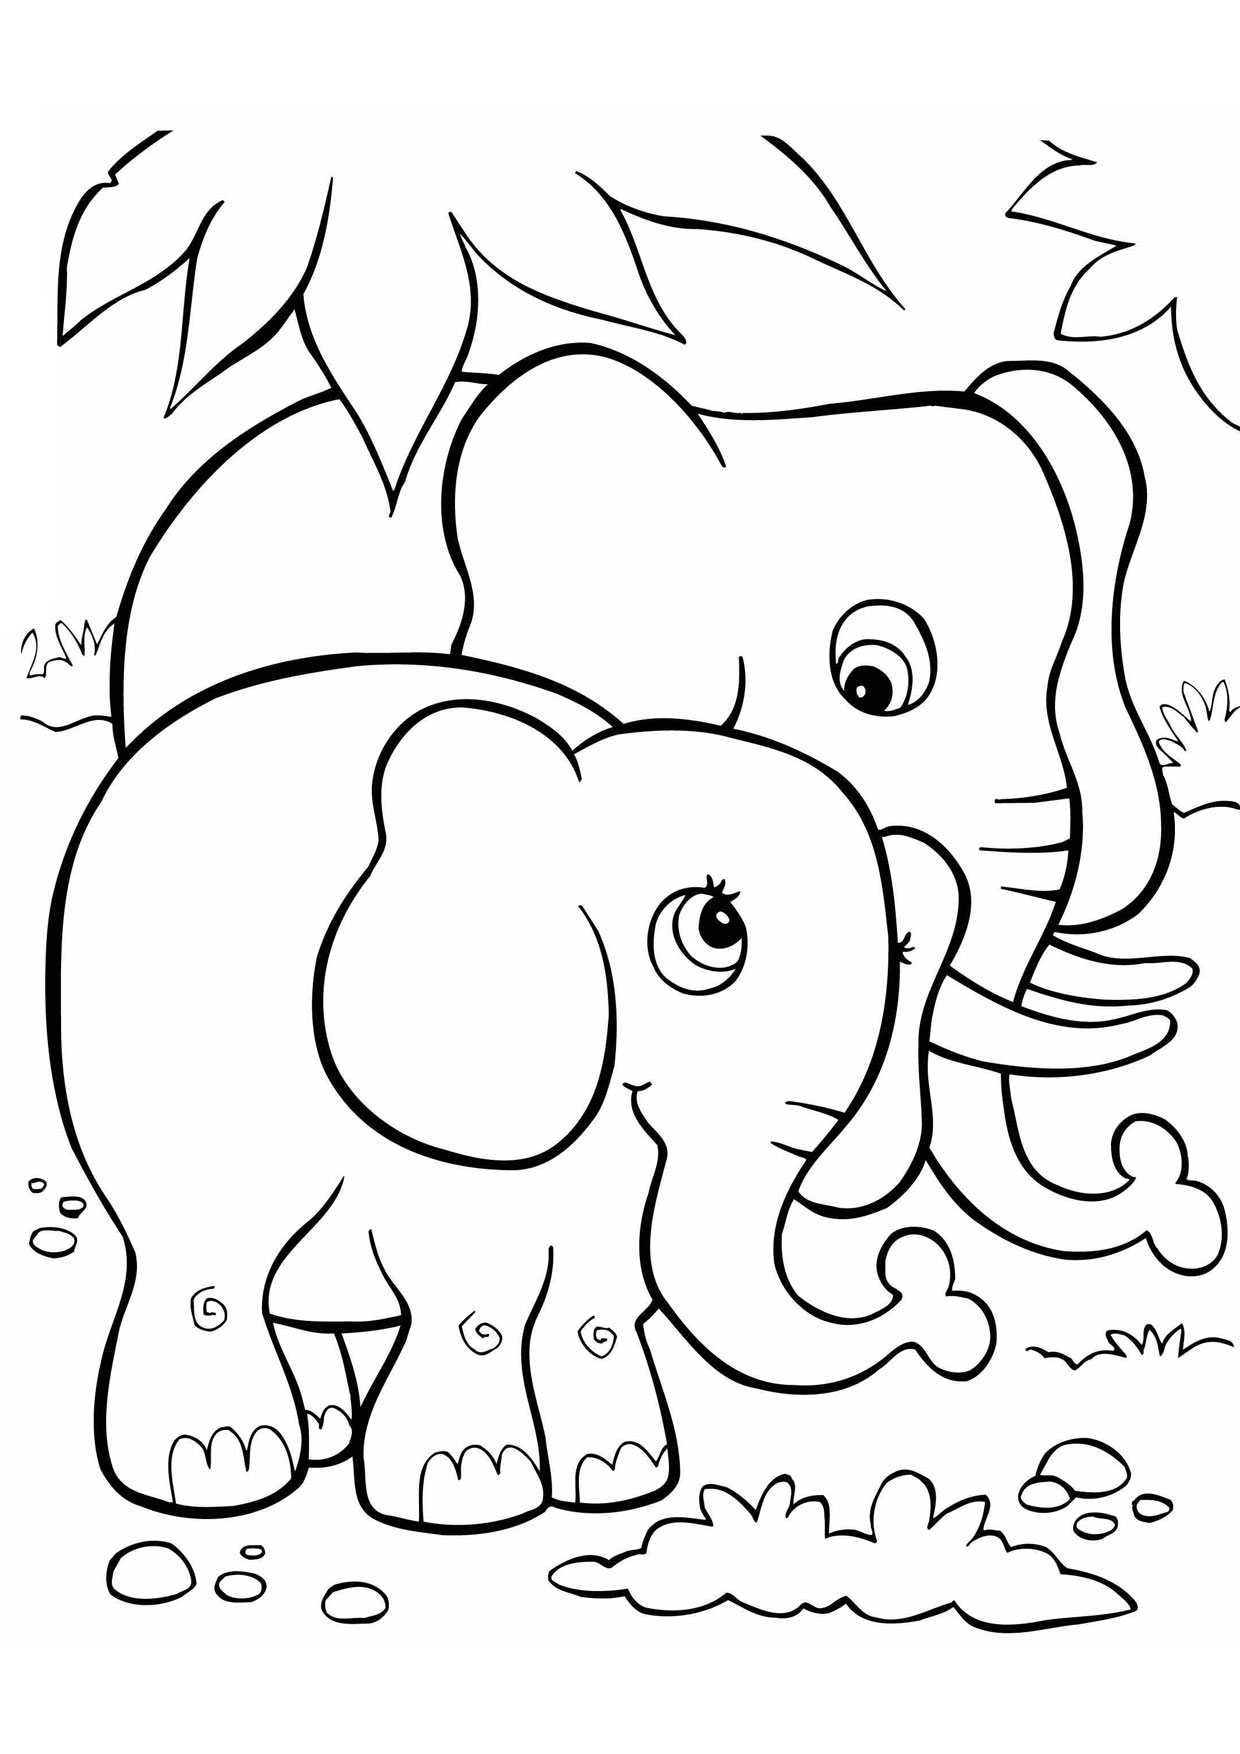 Disegno di Elefante Cartoon da colorare 04